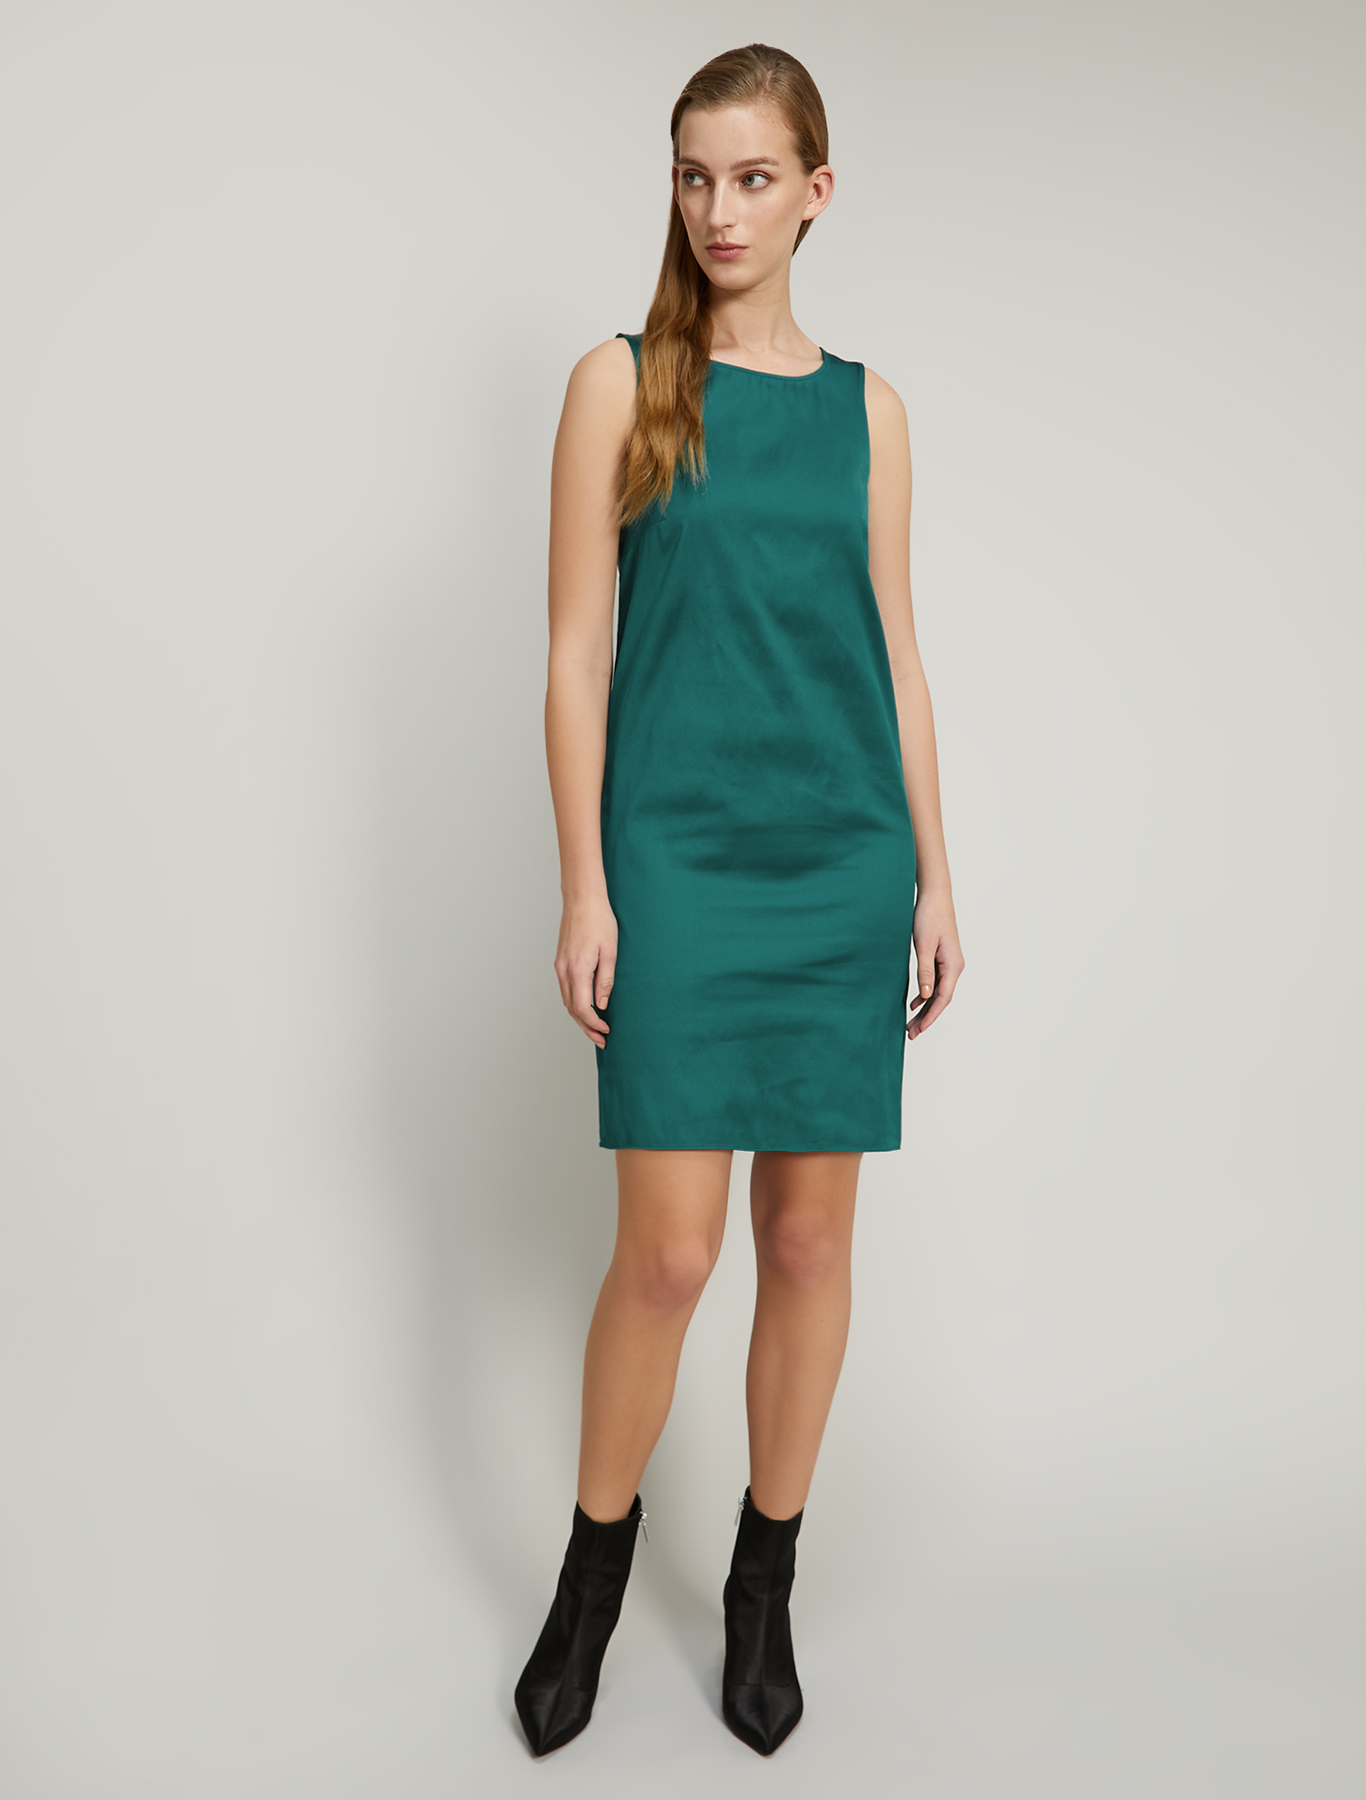 Taffeta sheath dress - emerald green - pennyblack